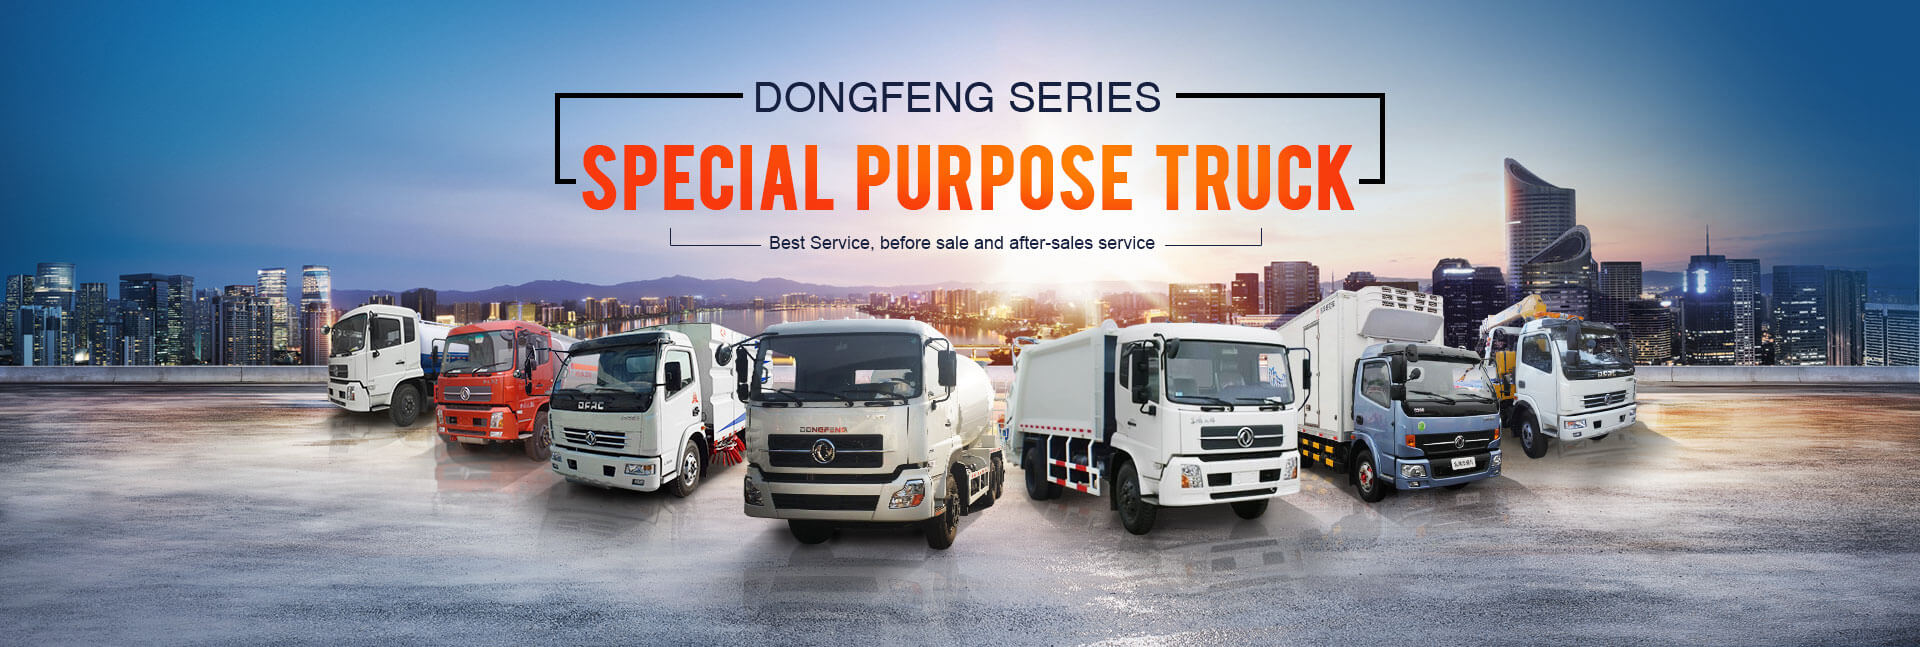 Dongfeng Commercial Truck